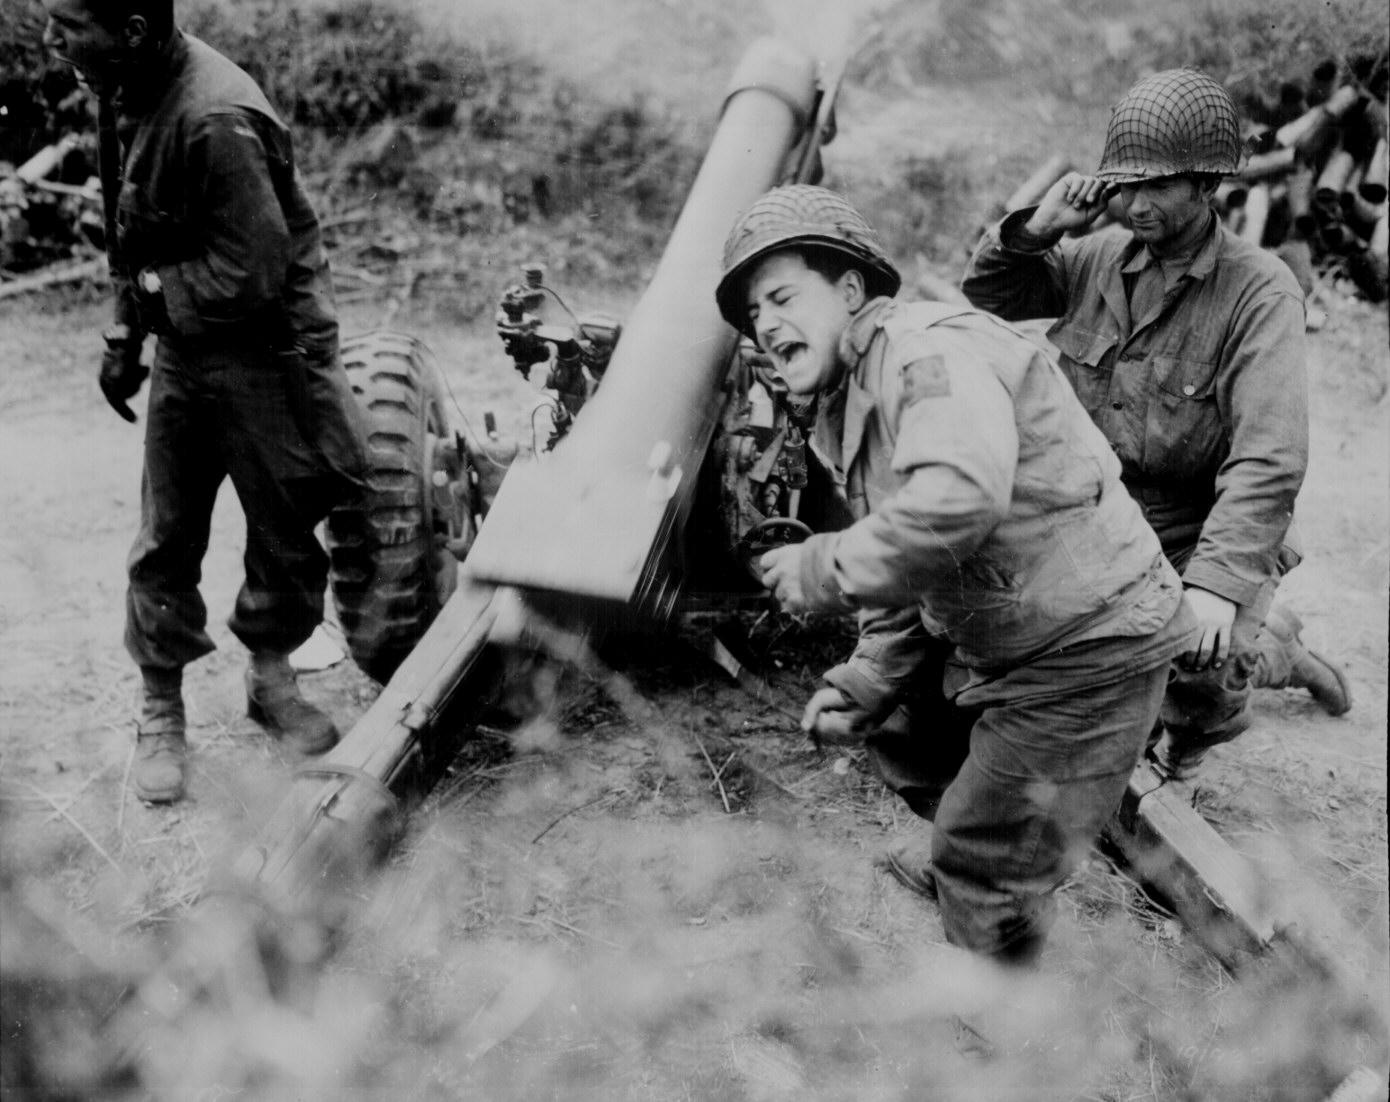 American Howitzer in Action During World War II